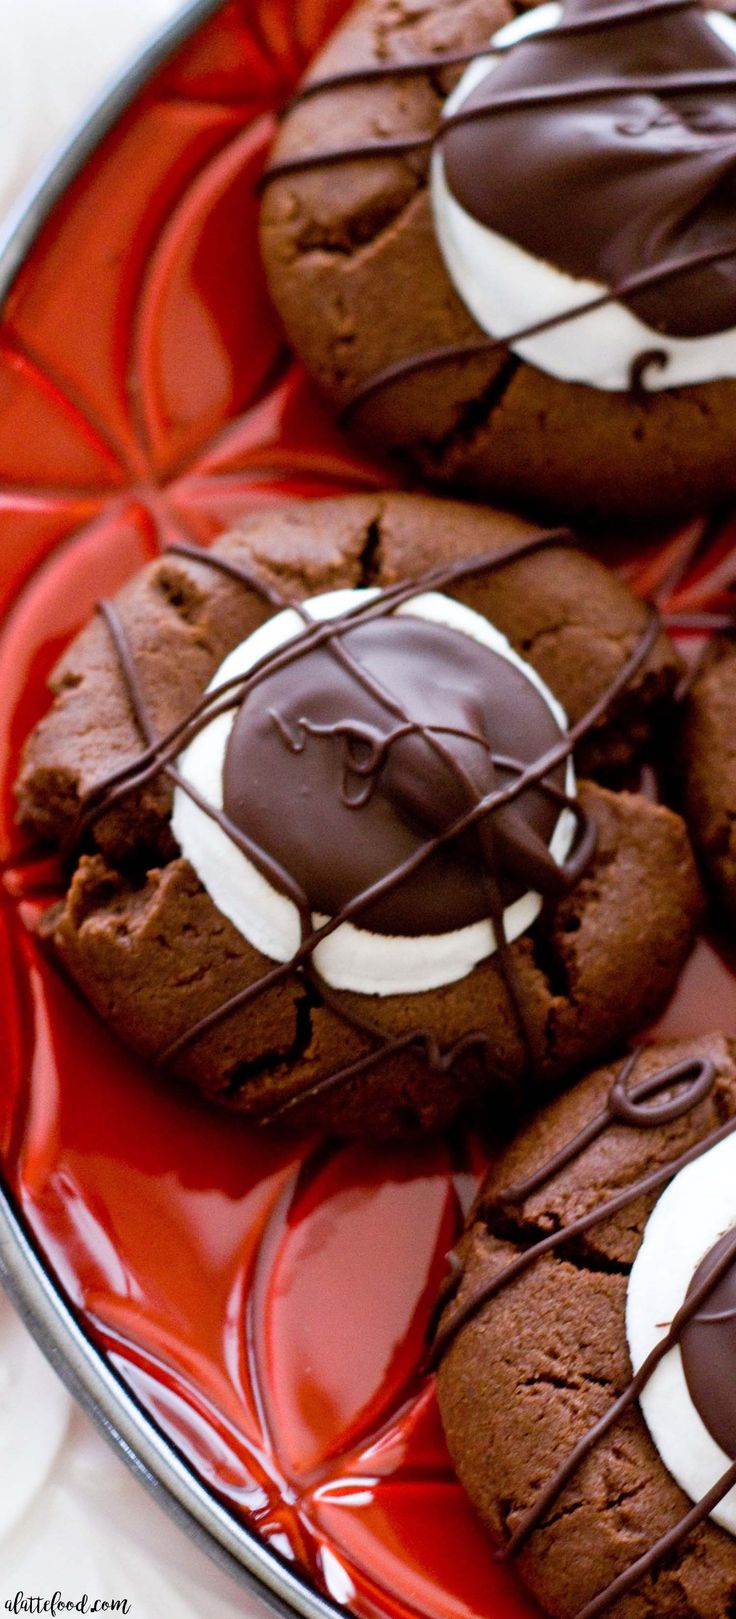 These Hot Chocolate Thumbprint Cookies taste like homemade hot chocolate in the form of a chewy chocolate cookie! They're intensely chocolatey, have a gooey marshmallow center, and covered in drizzled chocolate. Perfect.#hotchocolate #cookie #dessert #christmas #thanksgiving